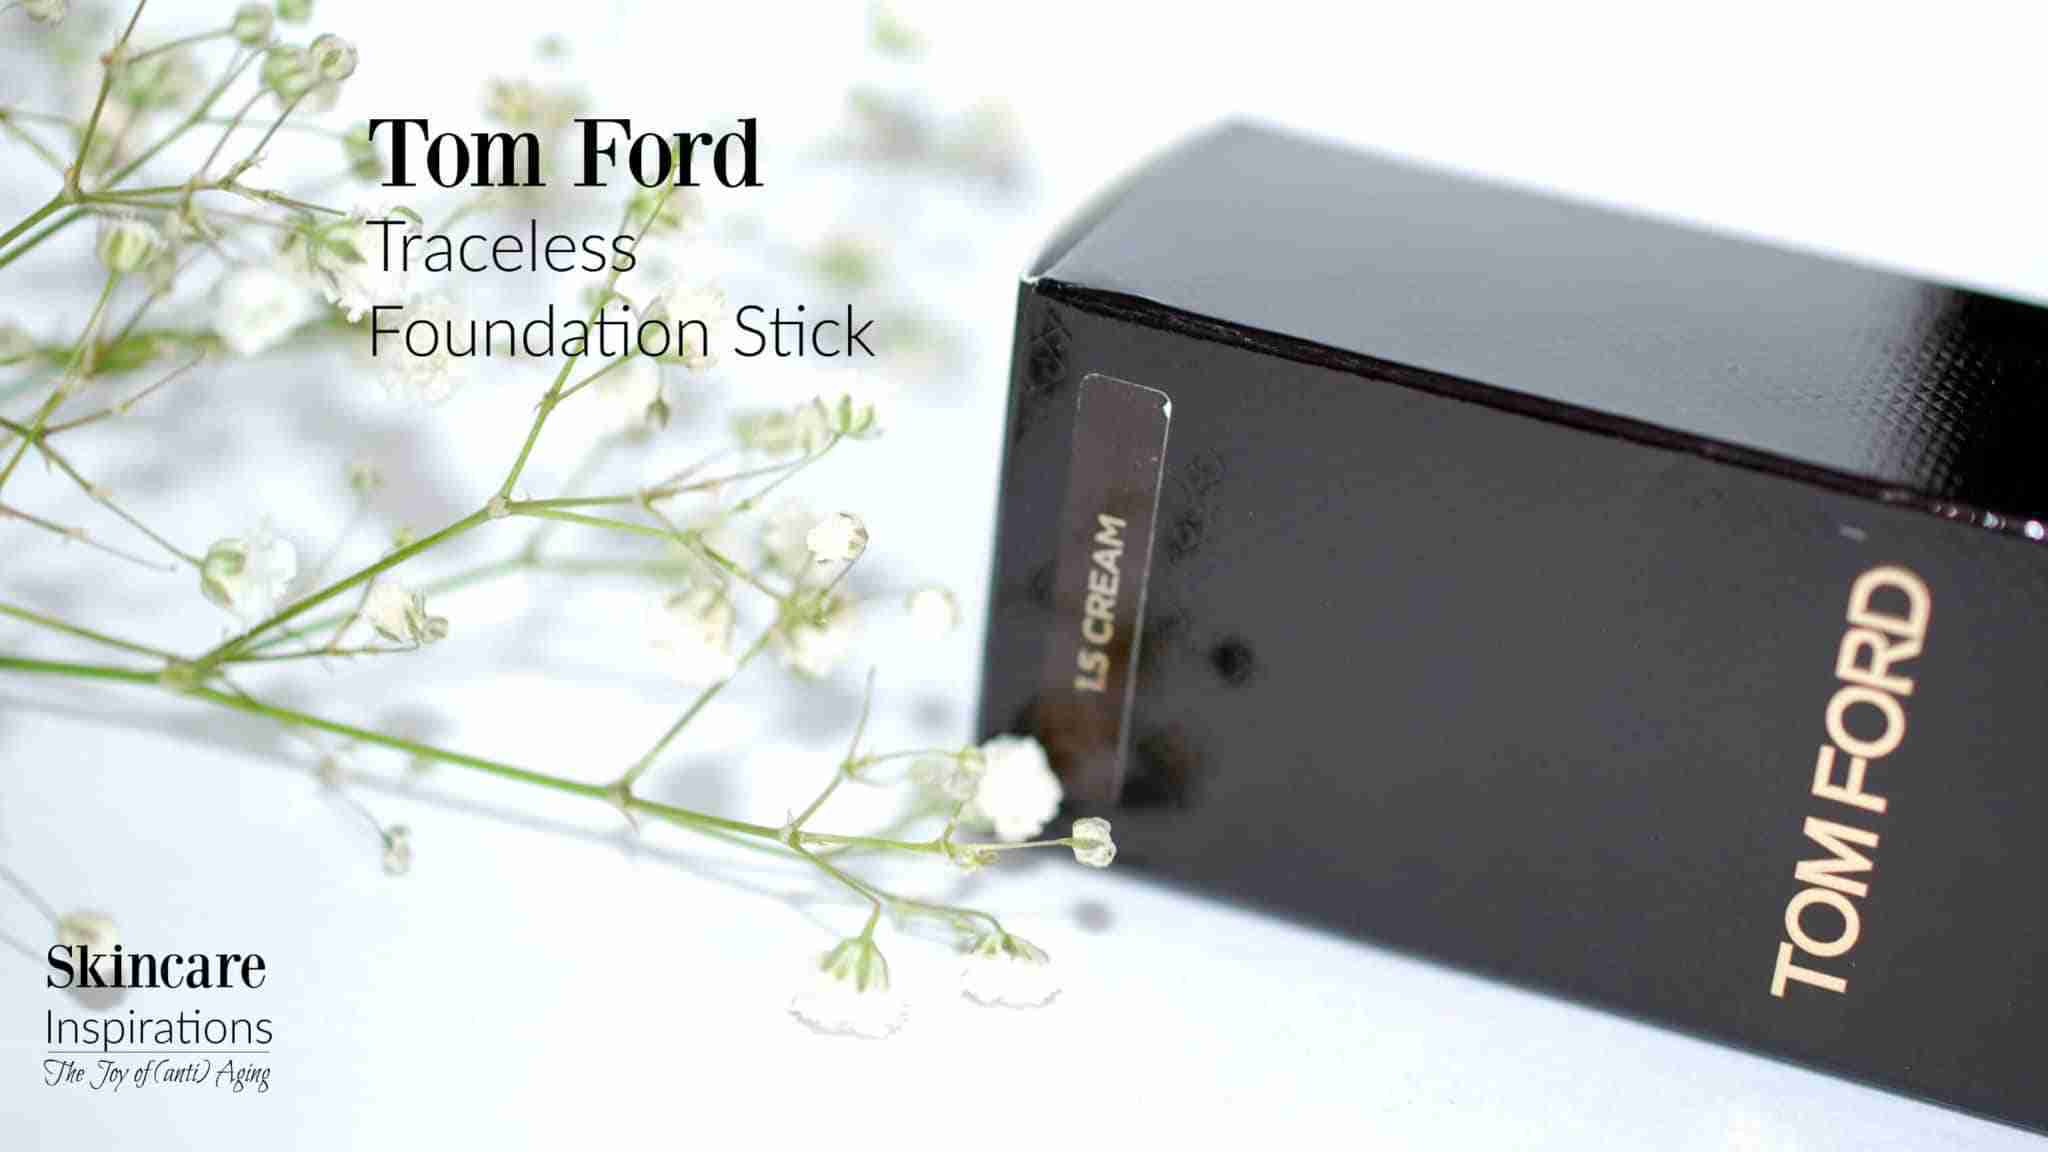 Tom Ford Traceless Foundation Stick 4